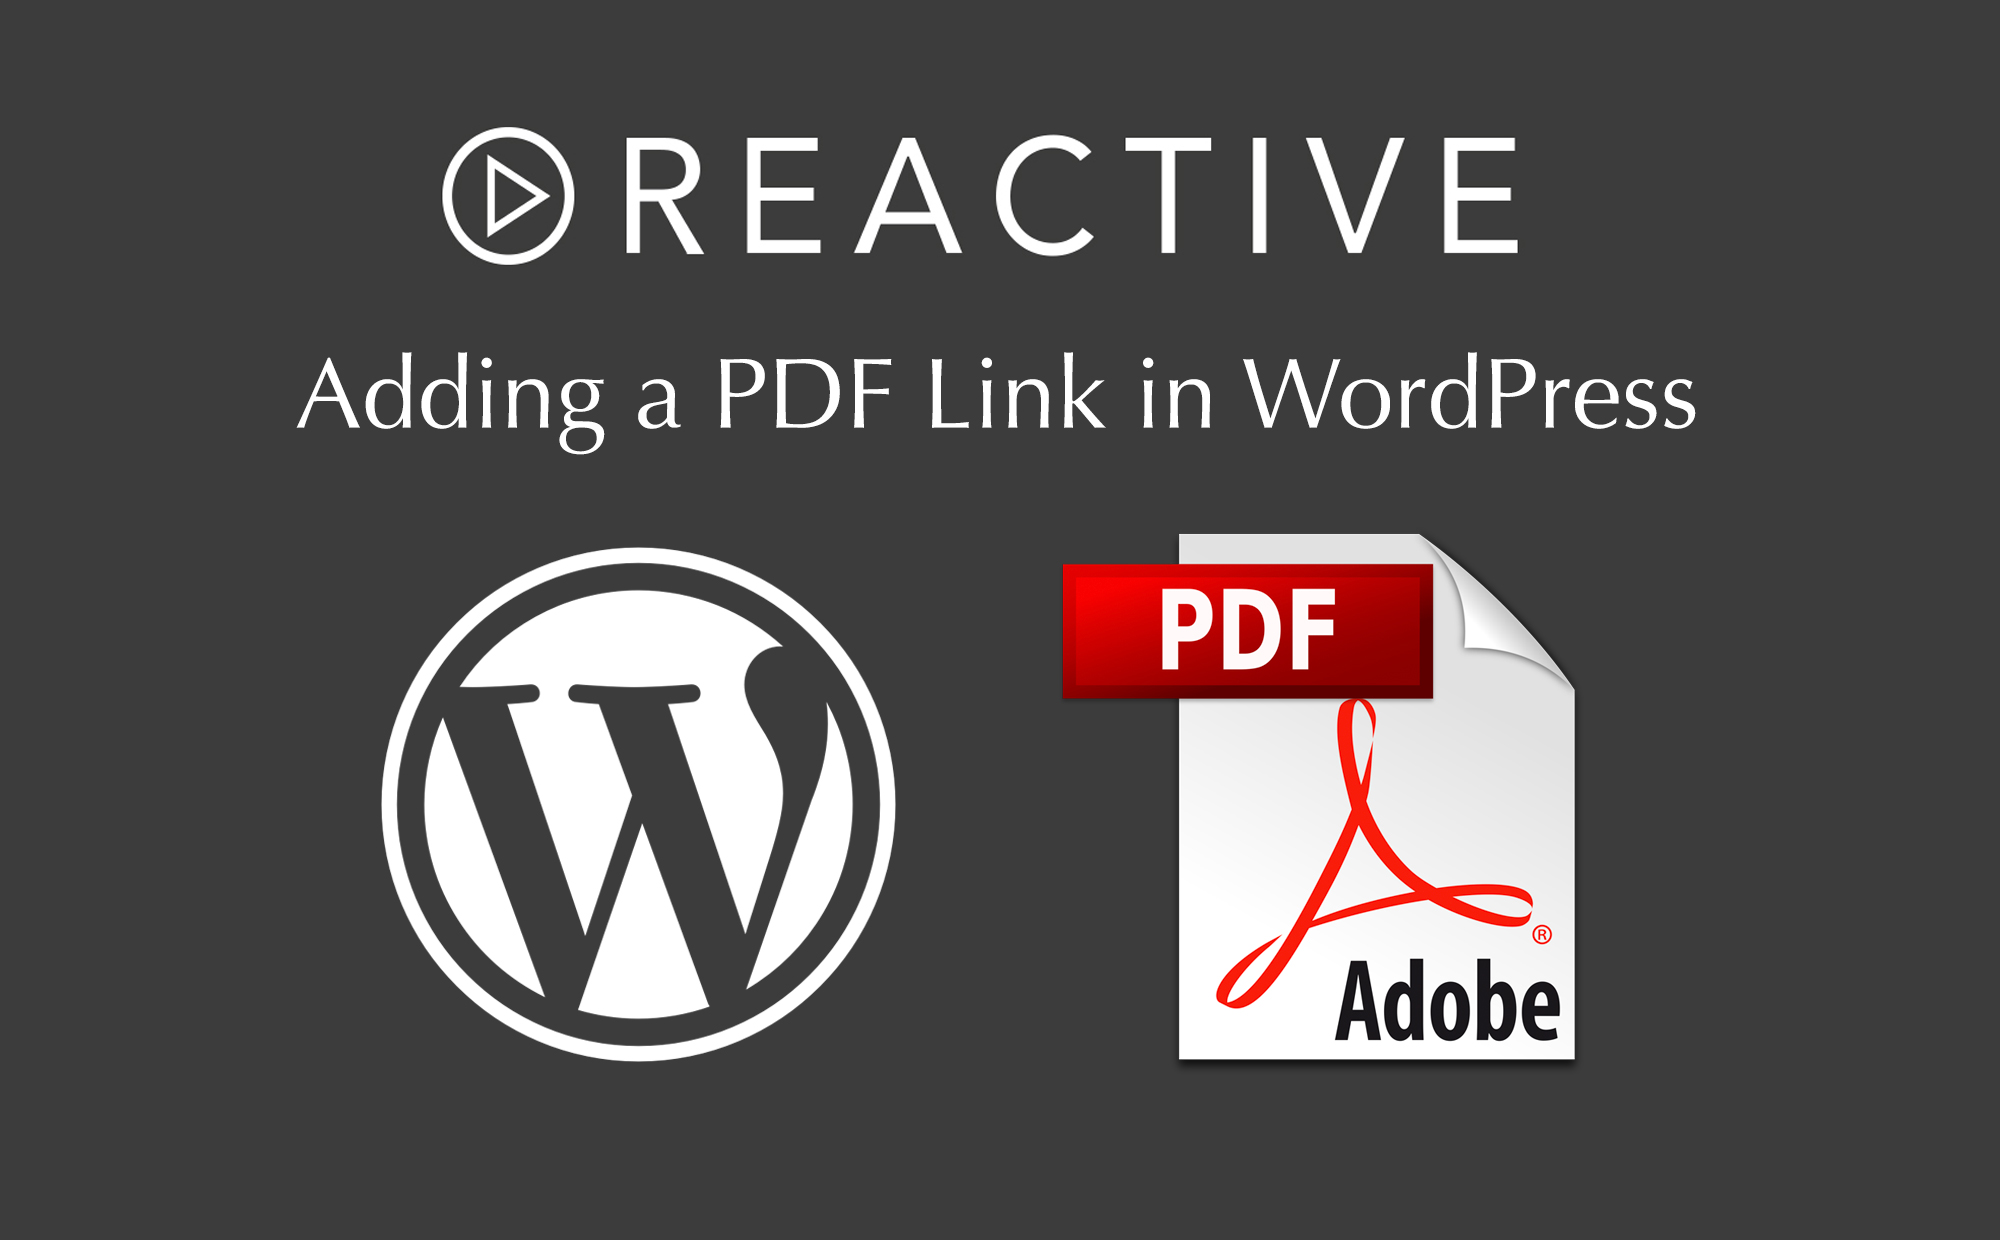 Adding a PDF link in WordPress